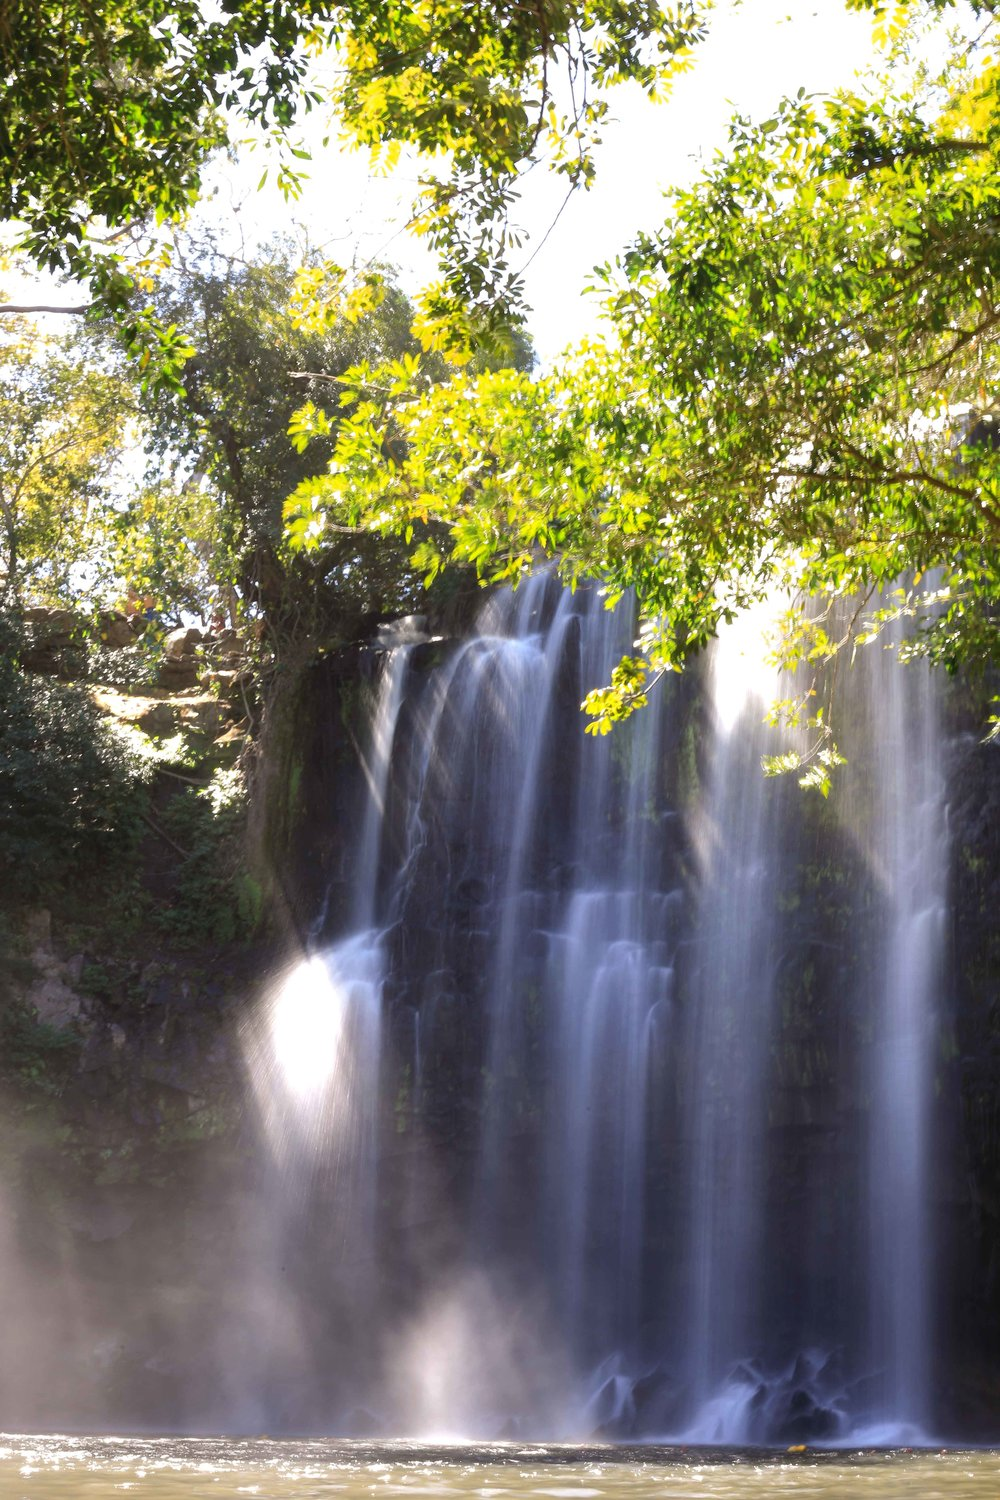 Llano de Cortez Waterfall (outside Liberia)